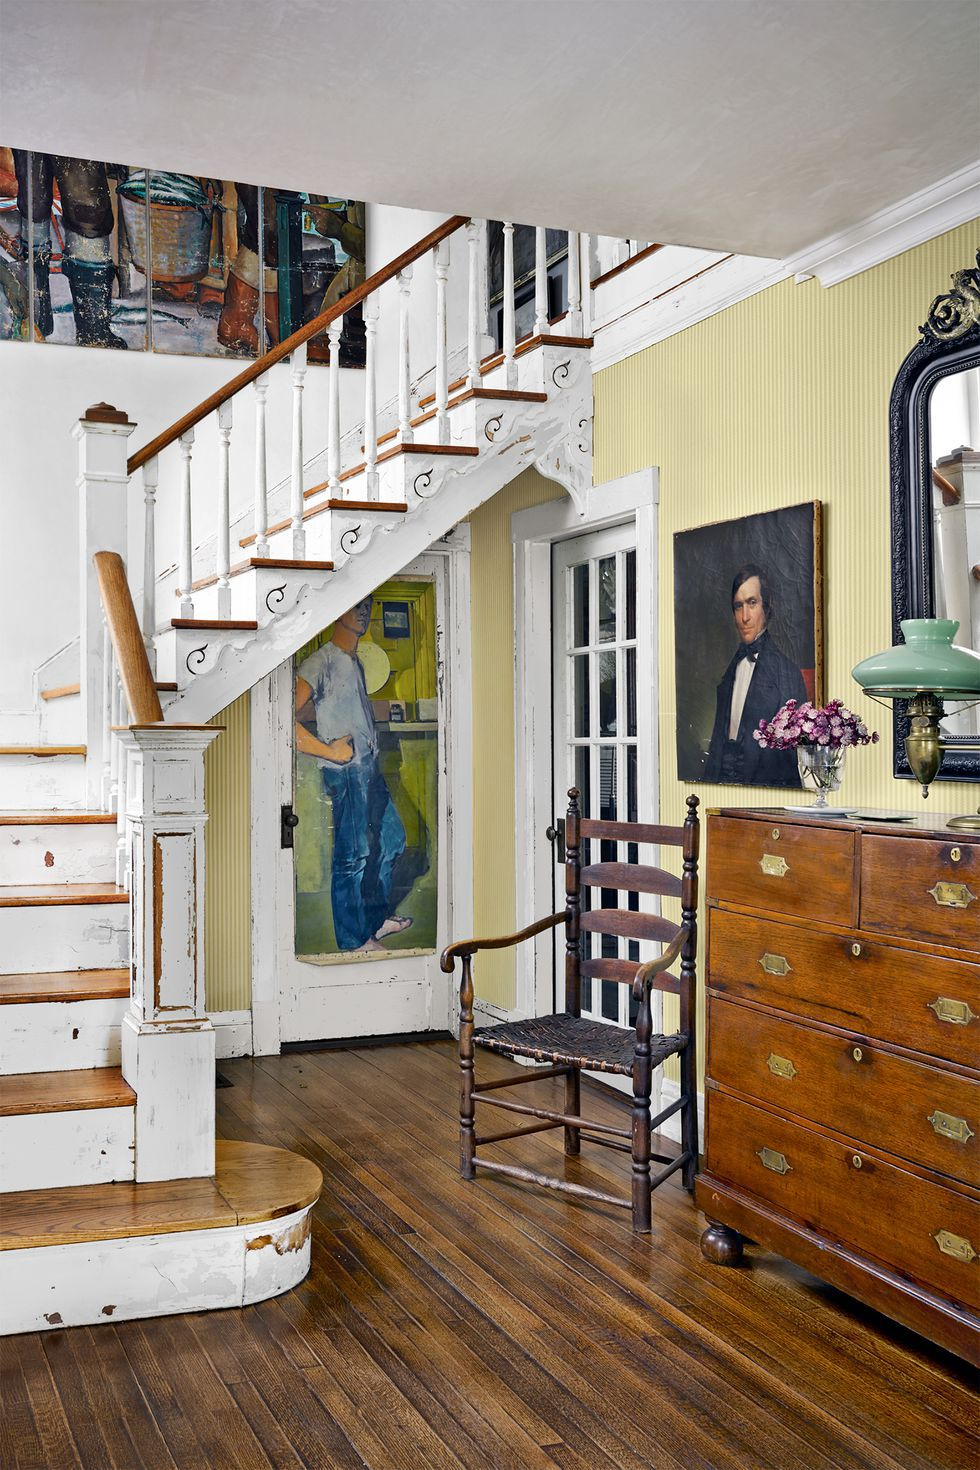 44 Staircase Design Ideas - Beautiful Ways to Decorate a Stairway